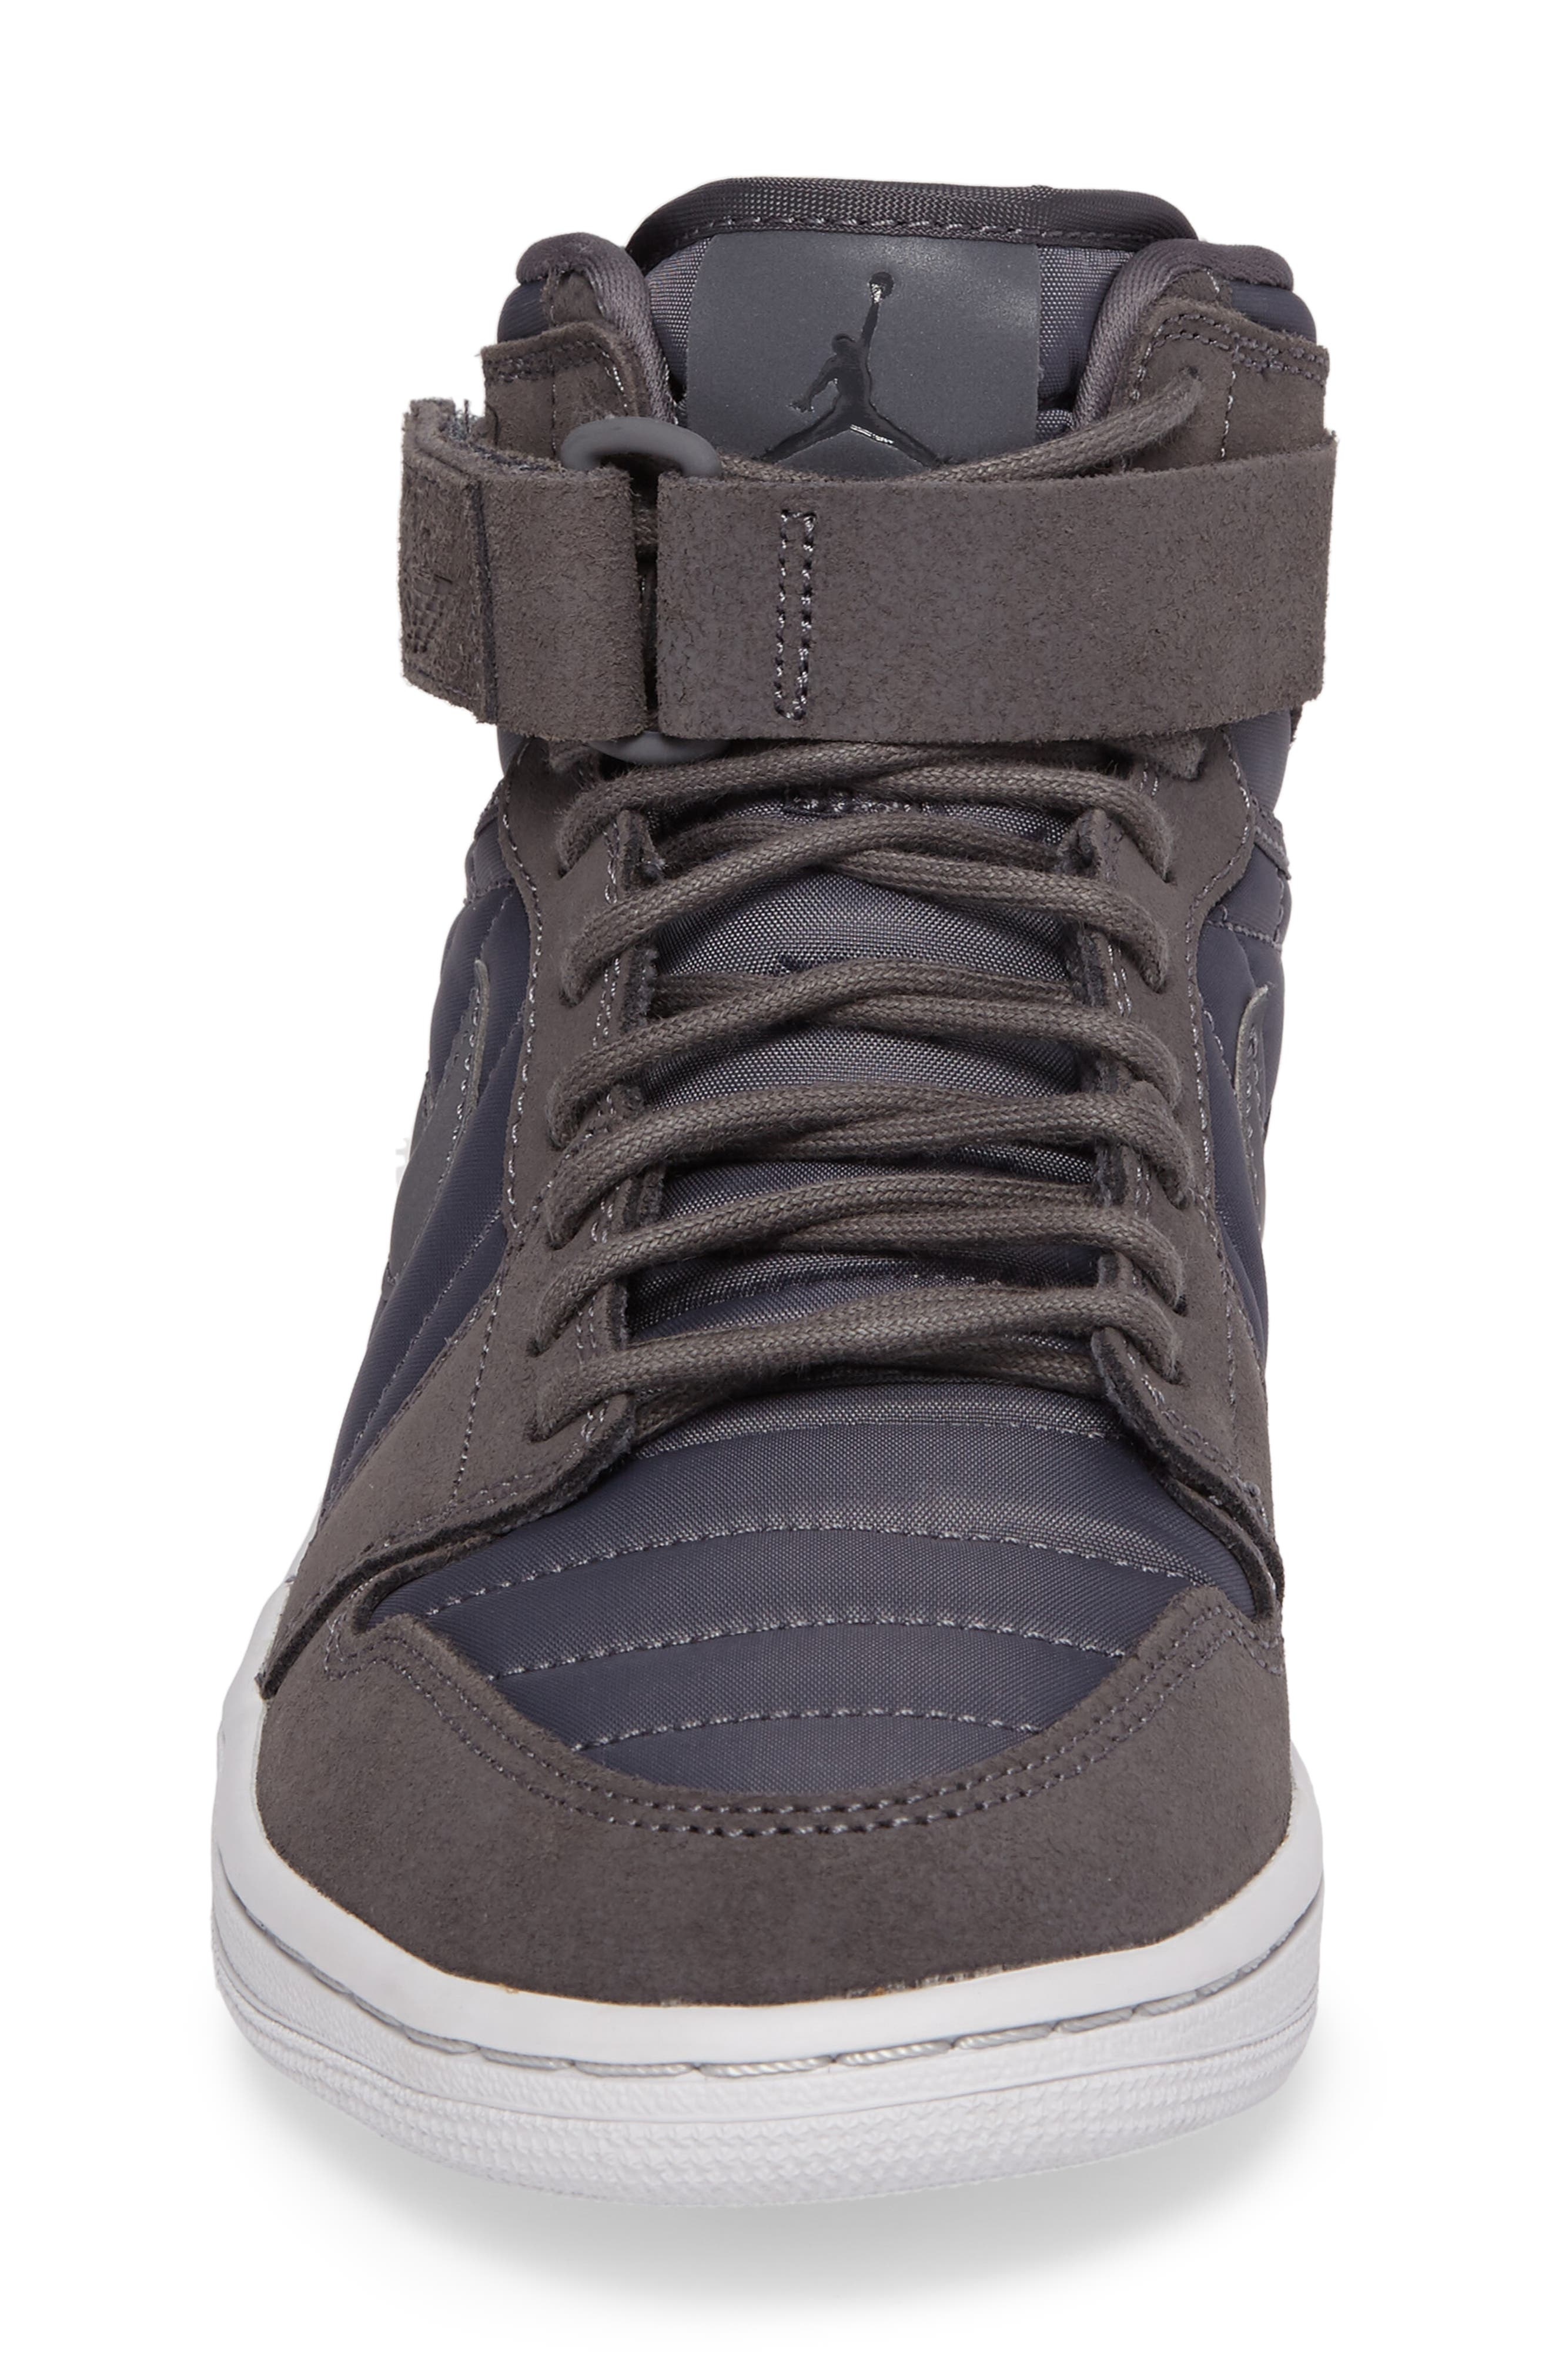 Air Jordan 1 Sneaker,                             Alternate thumbnail 4, color,                             Dark Grey/Anthracite/Platinum